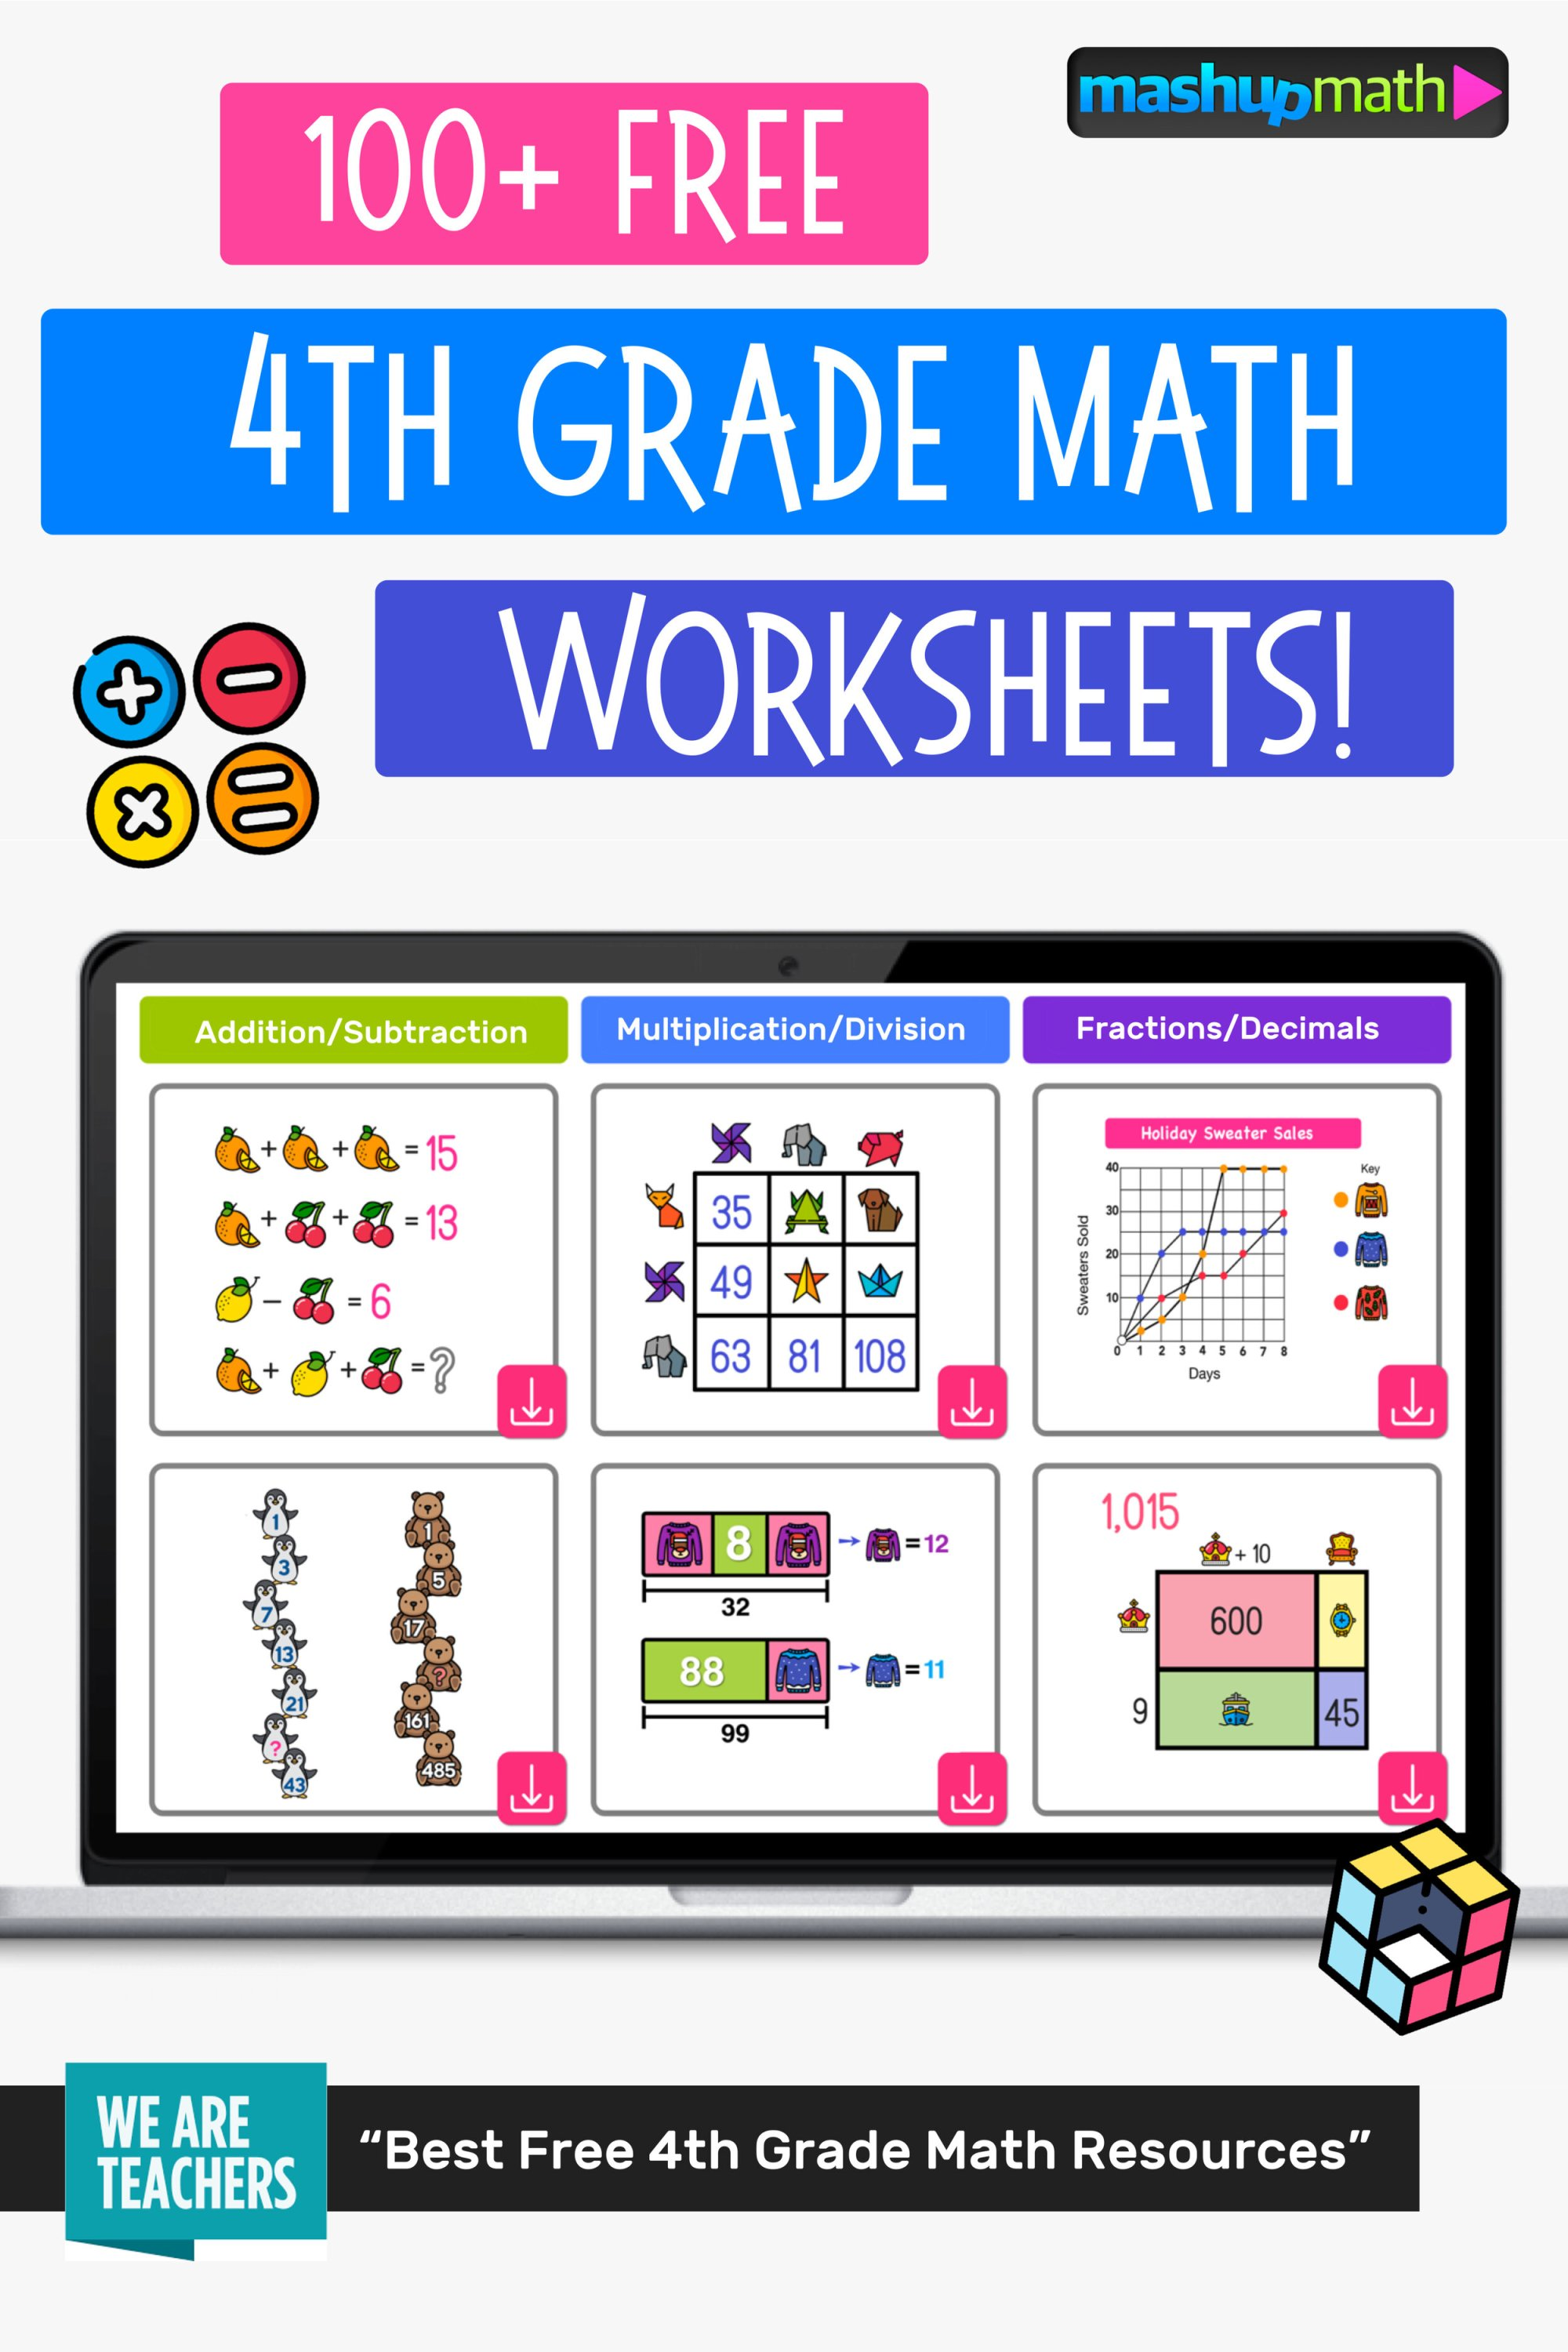 hight resolution of 100 Free 4th Grade Math Worksheets with Answers — Mashup Math